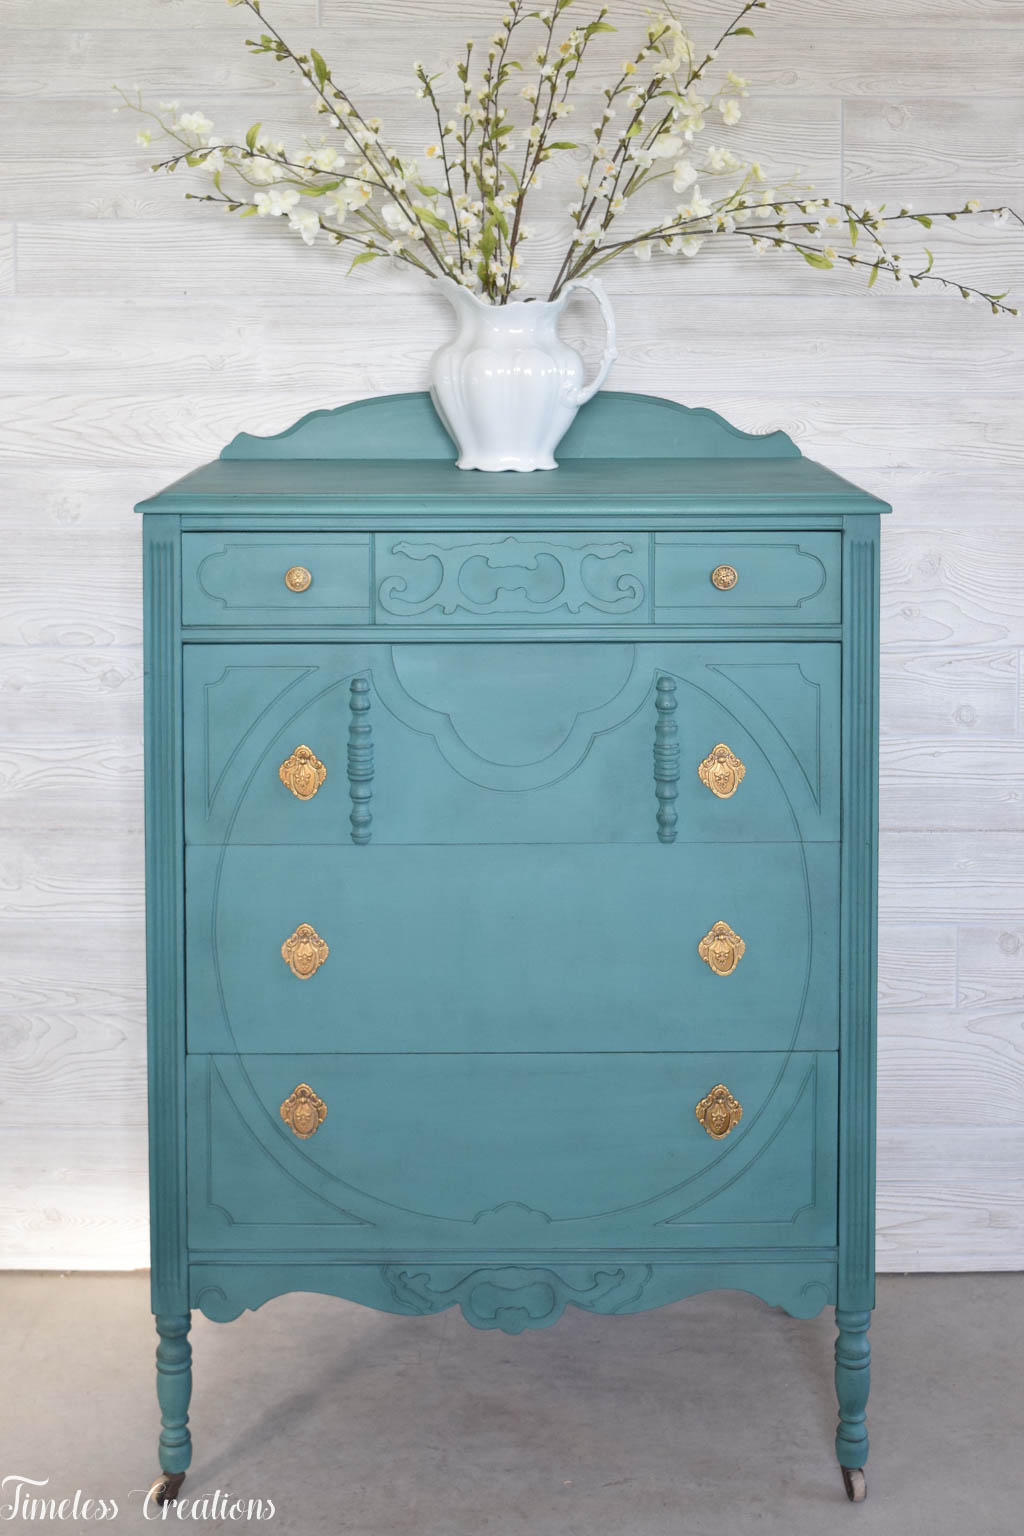 Terrific Antique Dresser Free Shipping Gamerscity Chair Design For Home Gamerscityorg